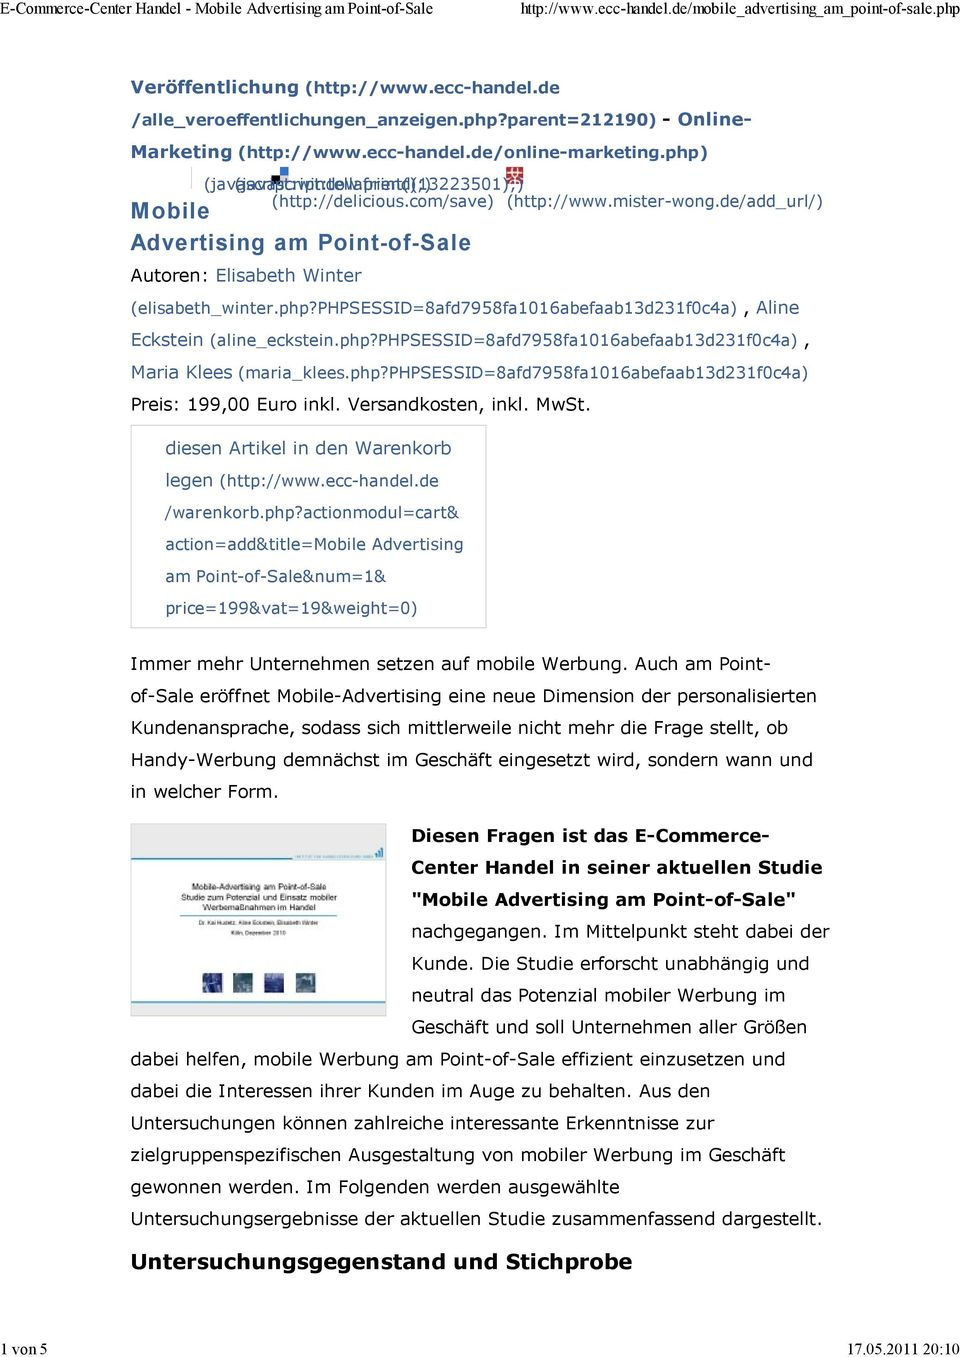 de/add_url/) Mobile Advertising am Point-of-Sale Autoren: Elisabeth Winter (elisabeth_winter.php?phpsessid=8afd7958fa1016abefaab13d231f0c4a), Aline Eckstein (aline_eckstein.php?phpsessid=8afd7958fa1016abefaab13d231f0c4a), Maria Klees (maria_klees.